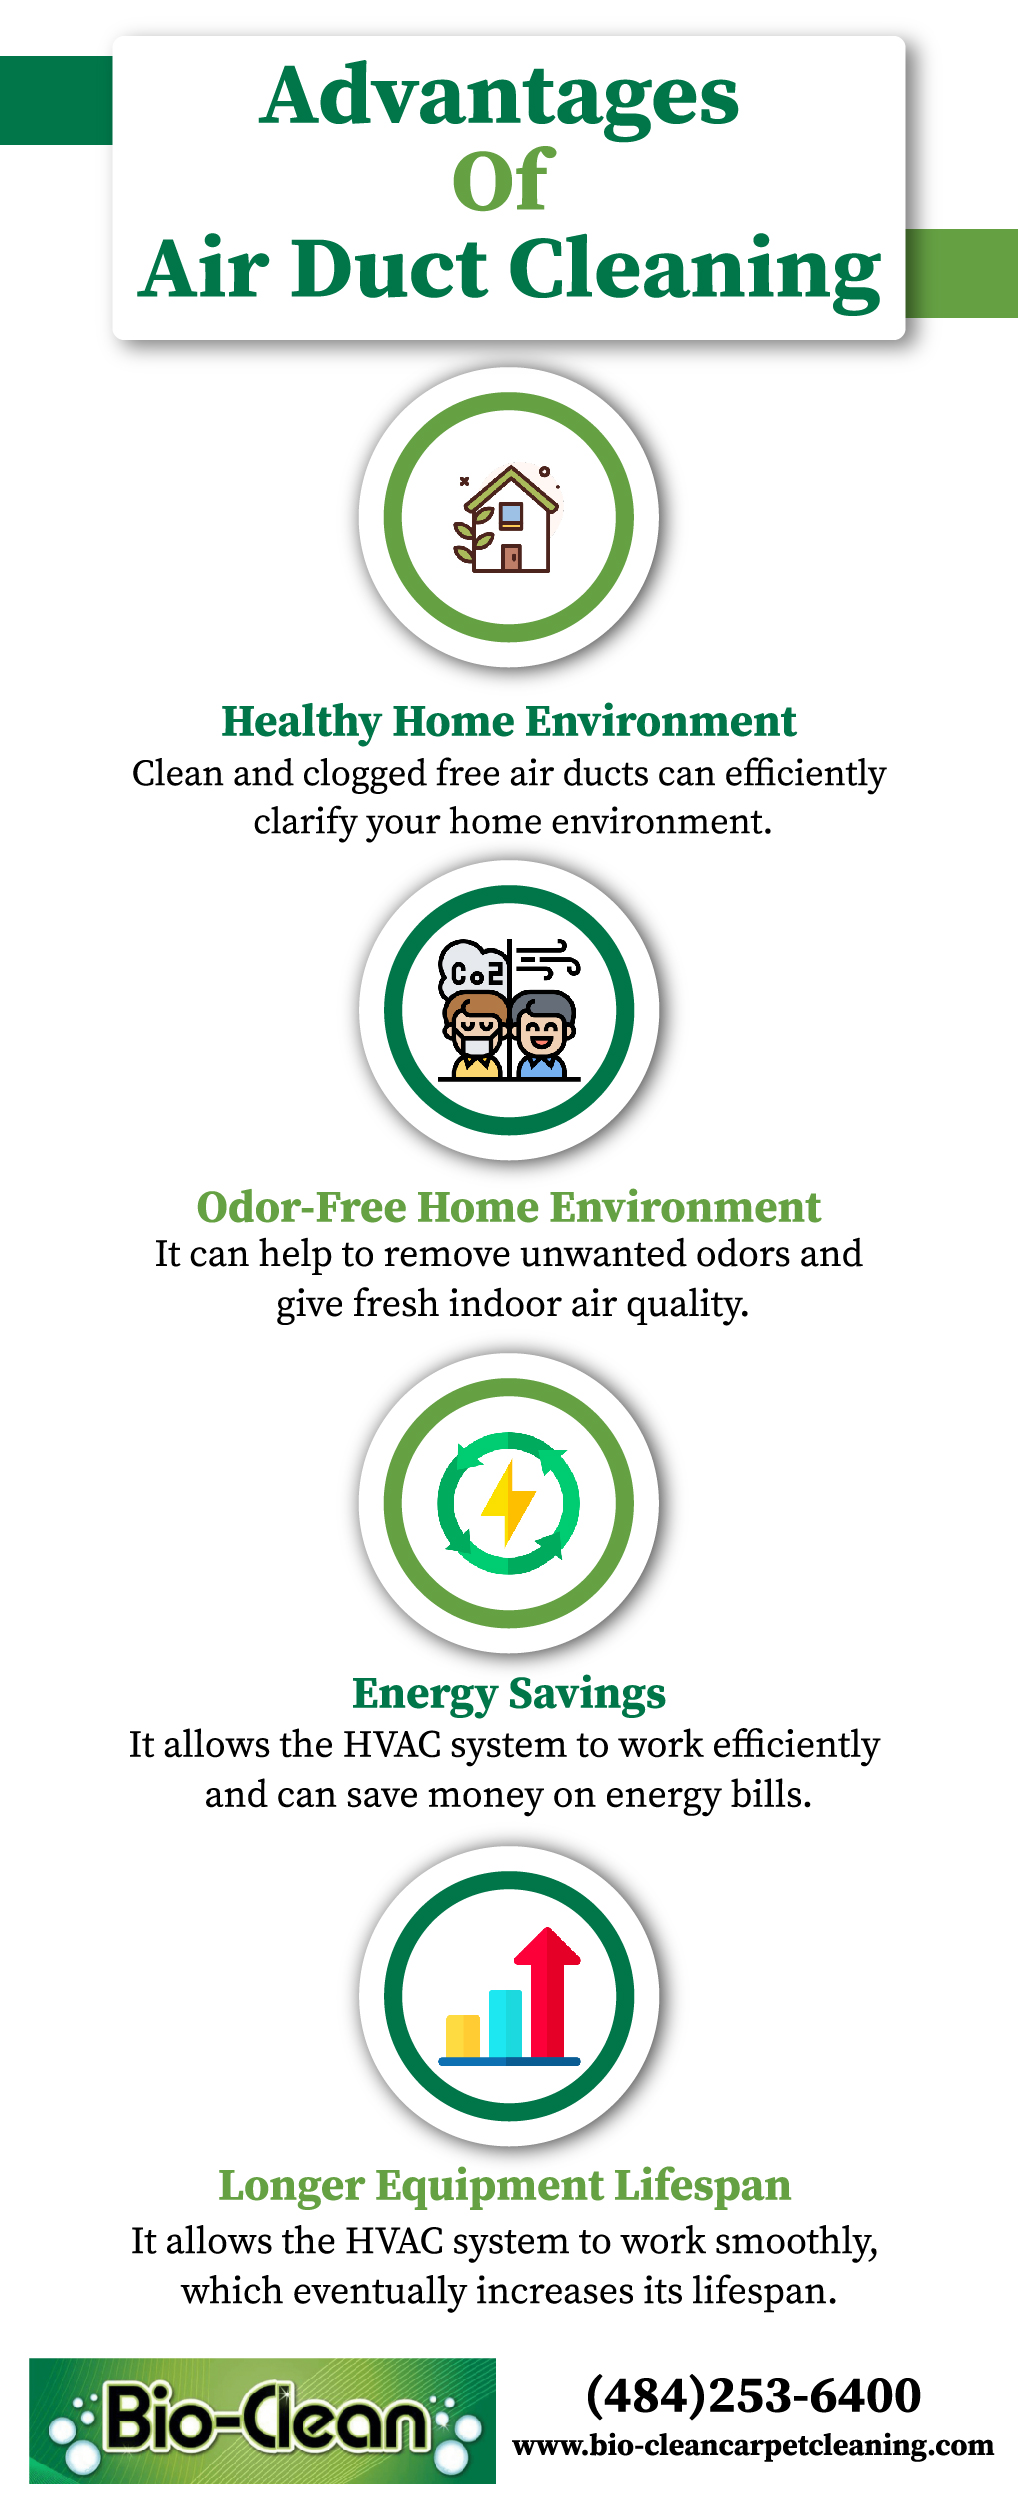 Advantages Of Air Duct Cleaning [Infographic]